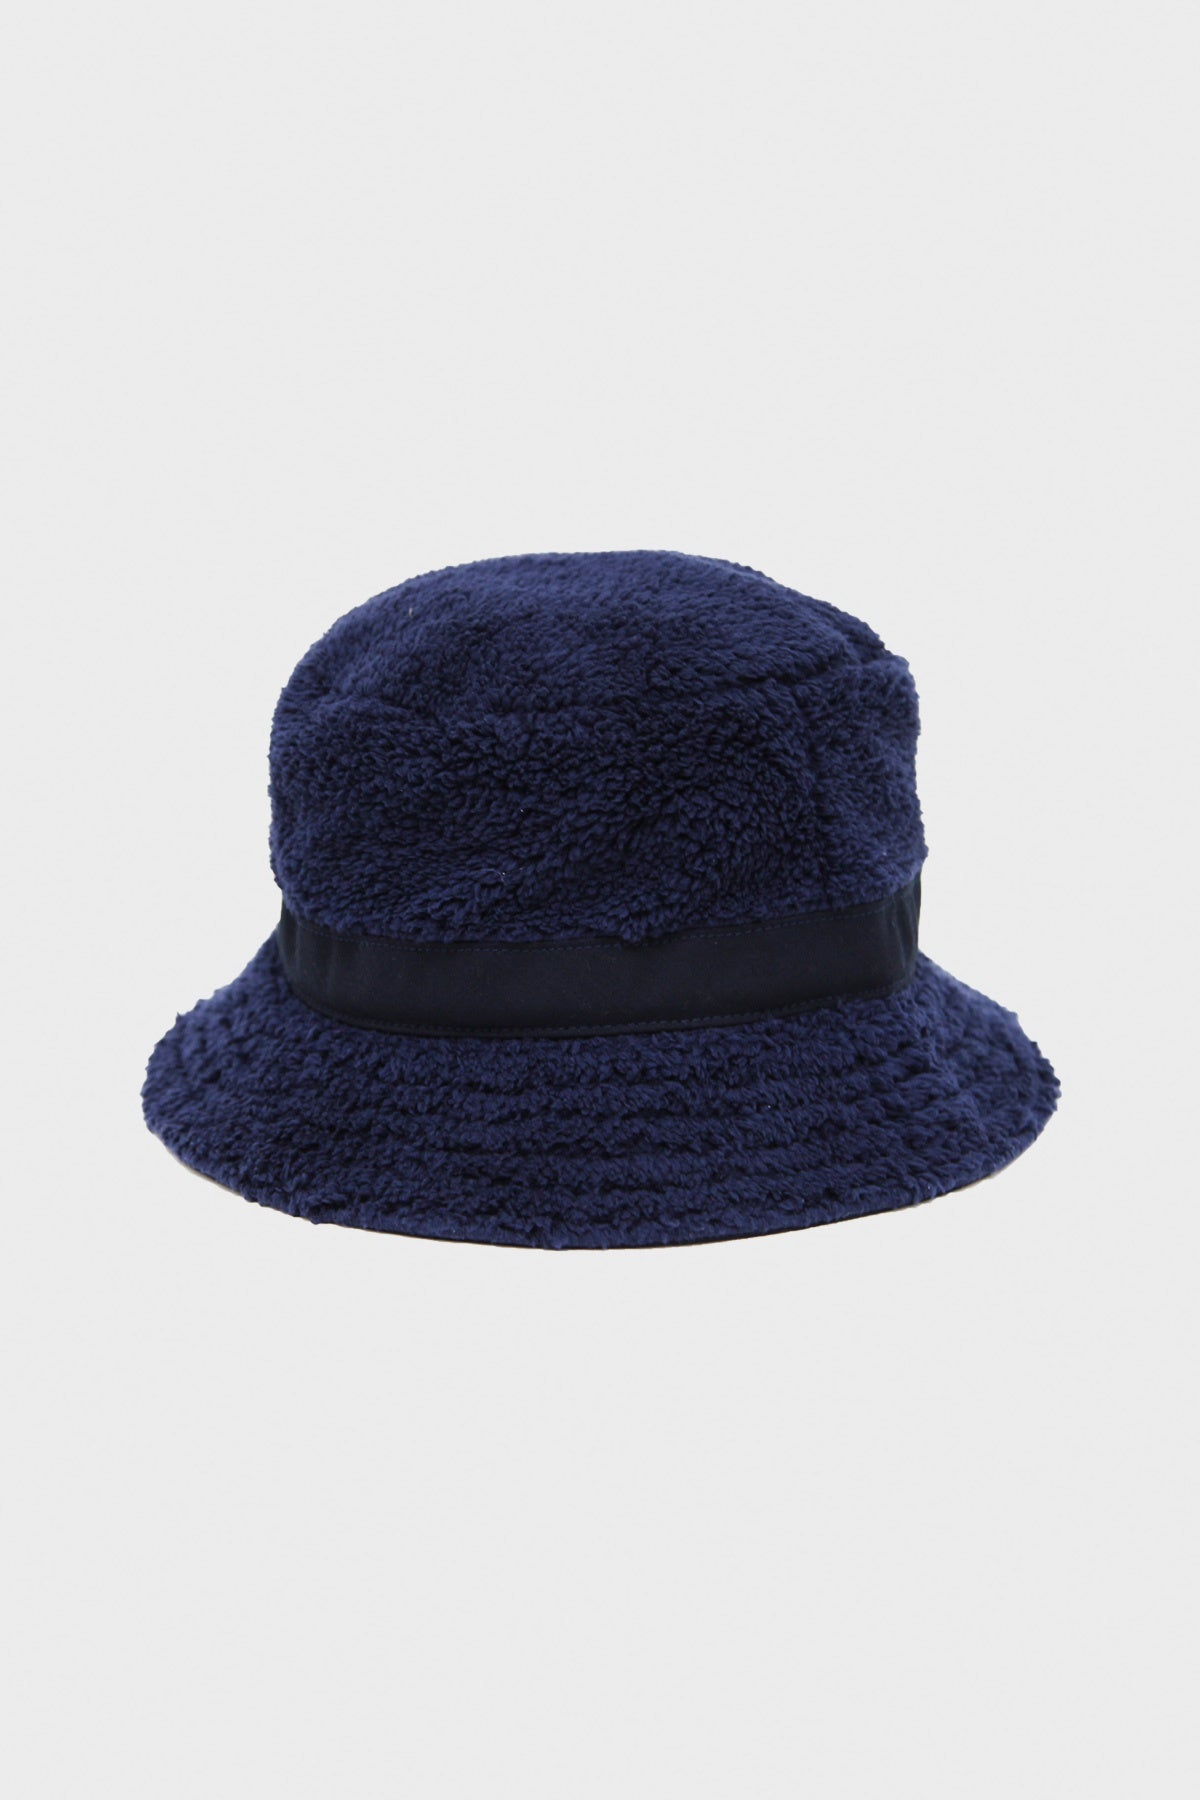 Cableami - Boa Fleece Bucket Hat - Navy - Canoe Club